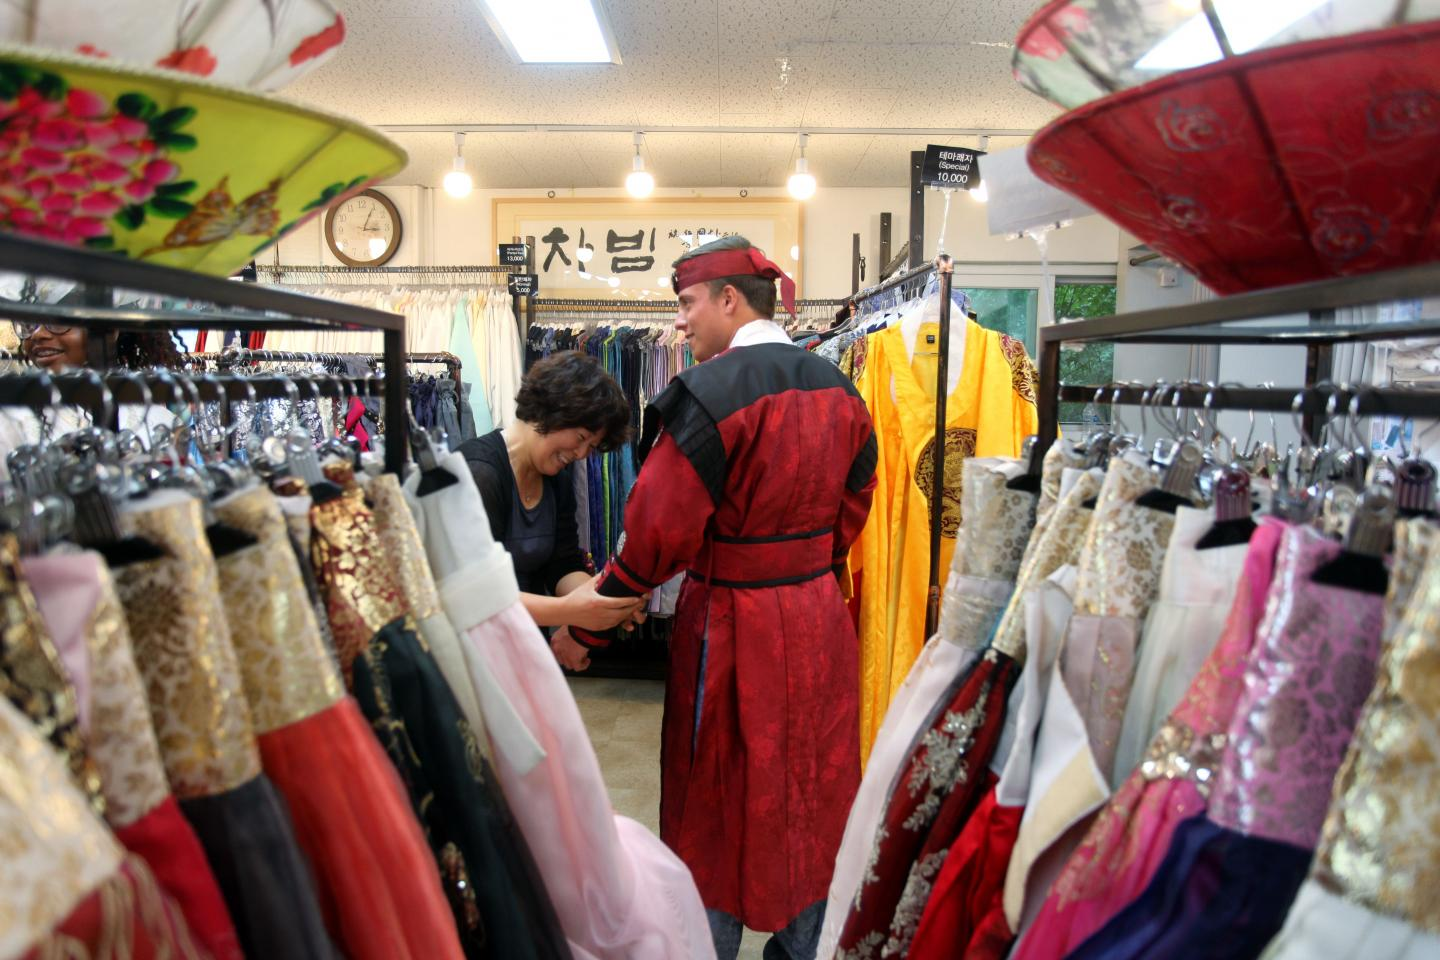 Teenage traveler puts on local hanbok outfit during summer youth travel program in South Korea